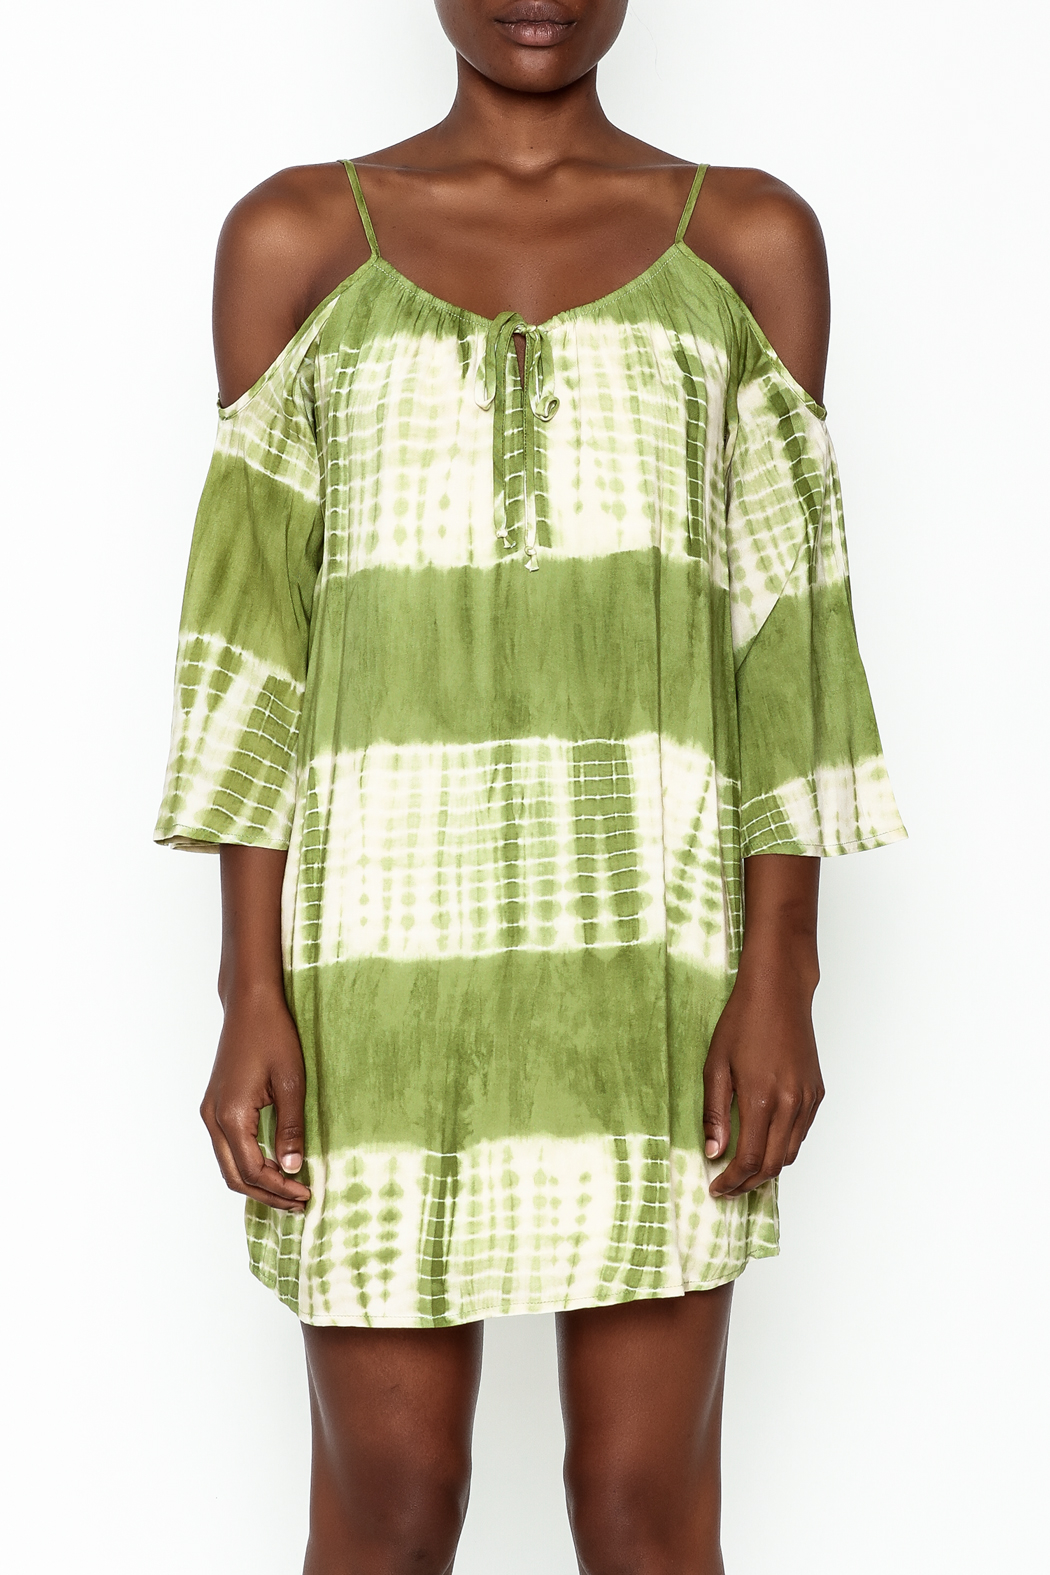 Peppermint Olive Tie Dye Dress - Front Full Image